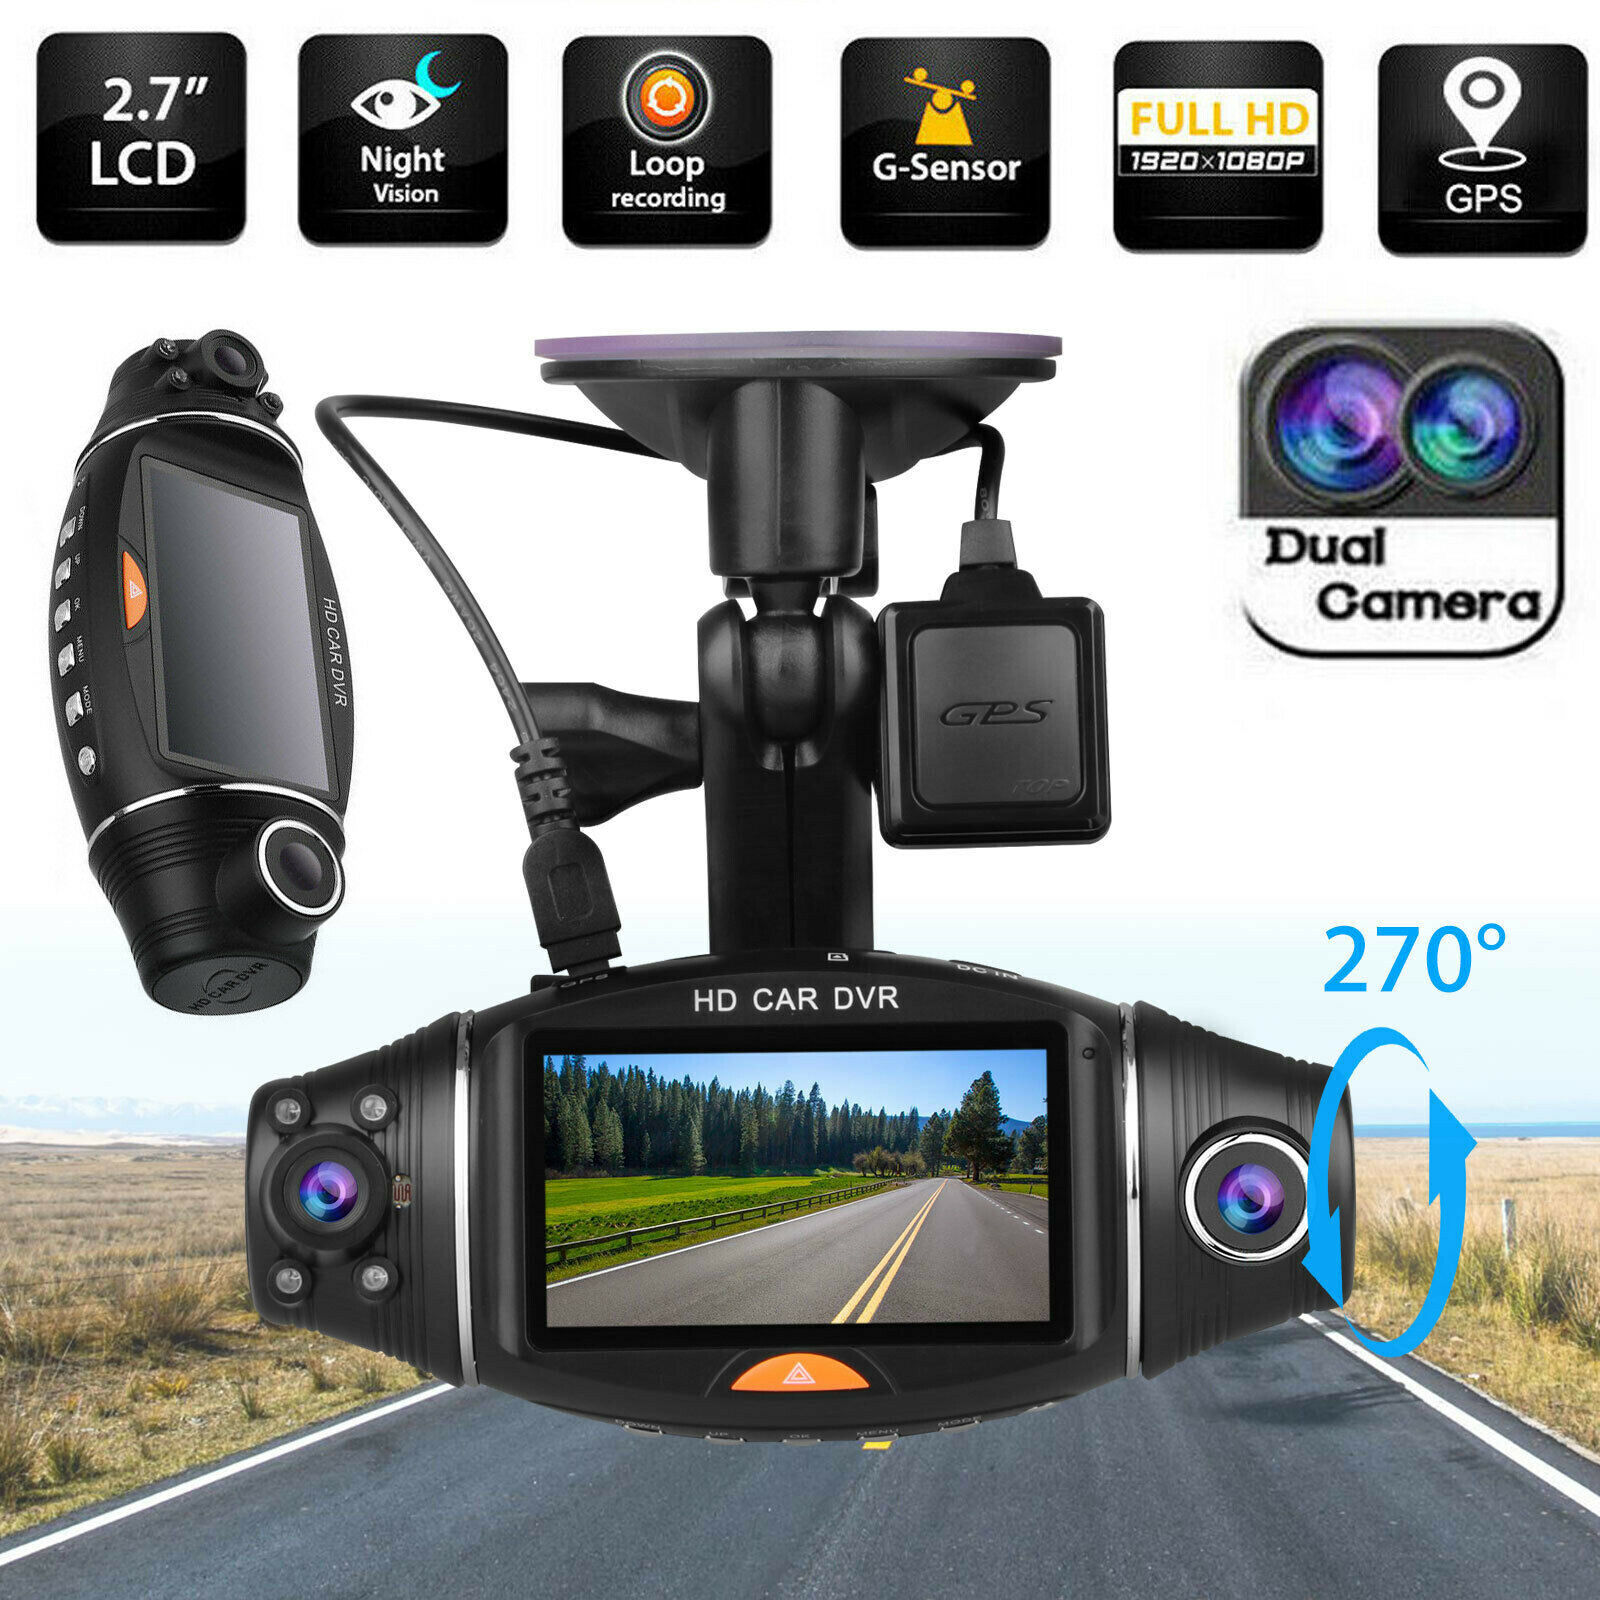 "Full HD 1080P 2.7"" Dual Lens Car DVR GPS Camera with Rear View Night Verison Camera Video Recorder G Sensor Dash Cam Car DVRs